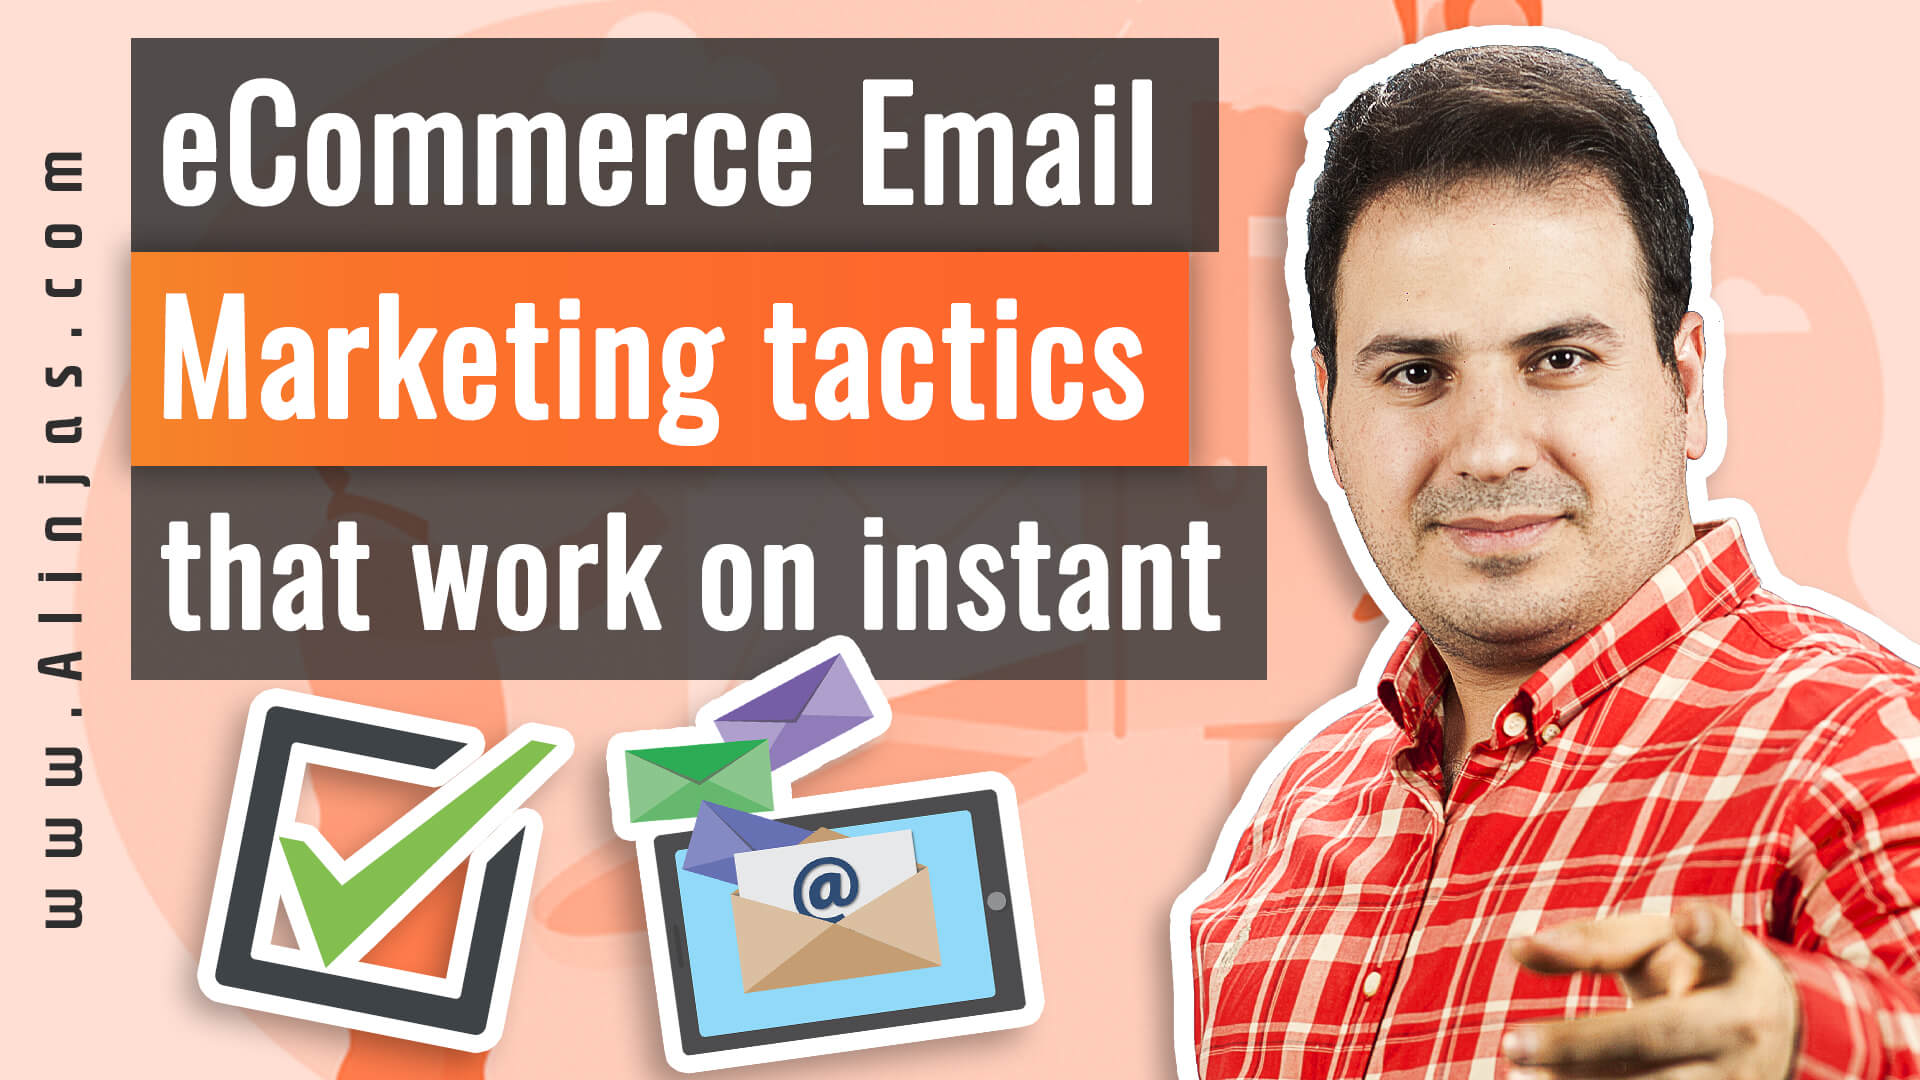 Ali AlAbbas - eCommerce Email Marketing tactics that work on instant